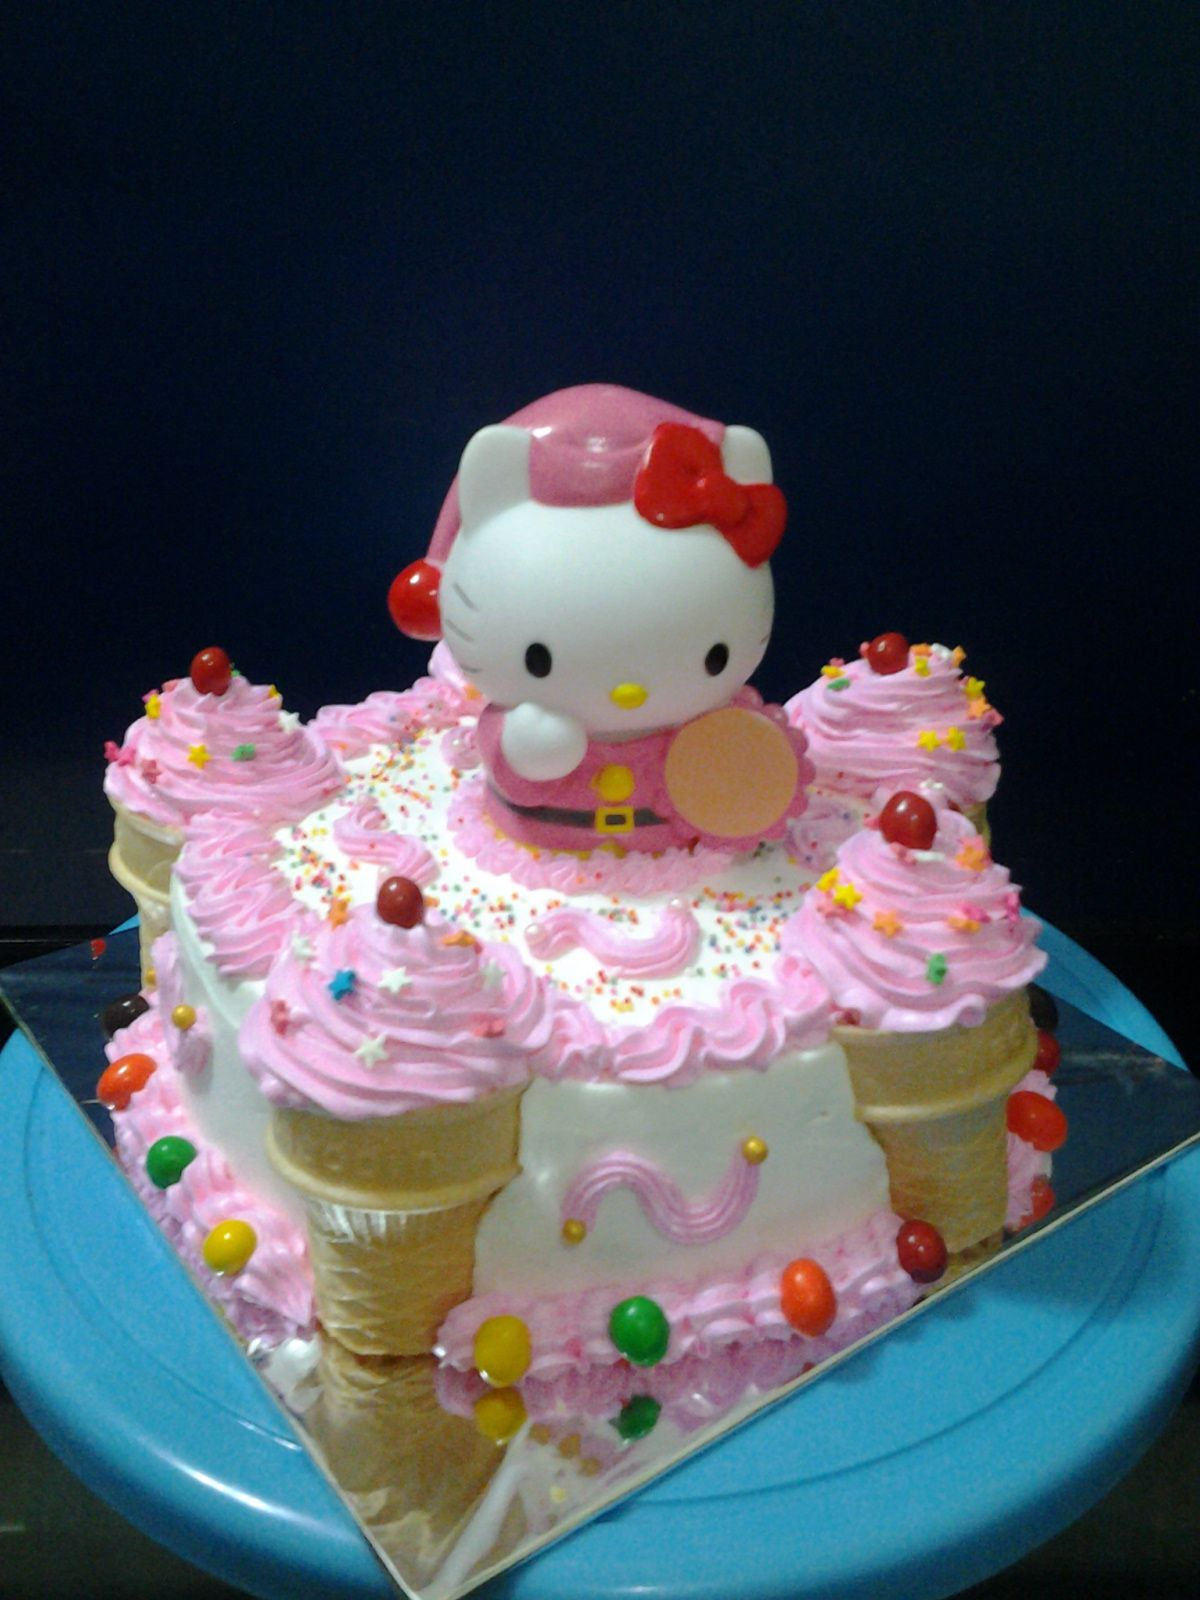 30 Cute Hello Kitty Cake Ideas and Designs   Echomon.co.uk ...